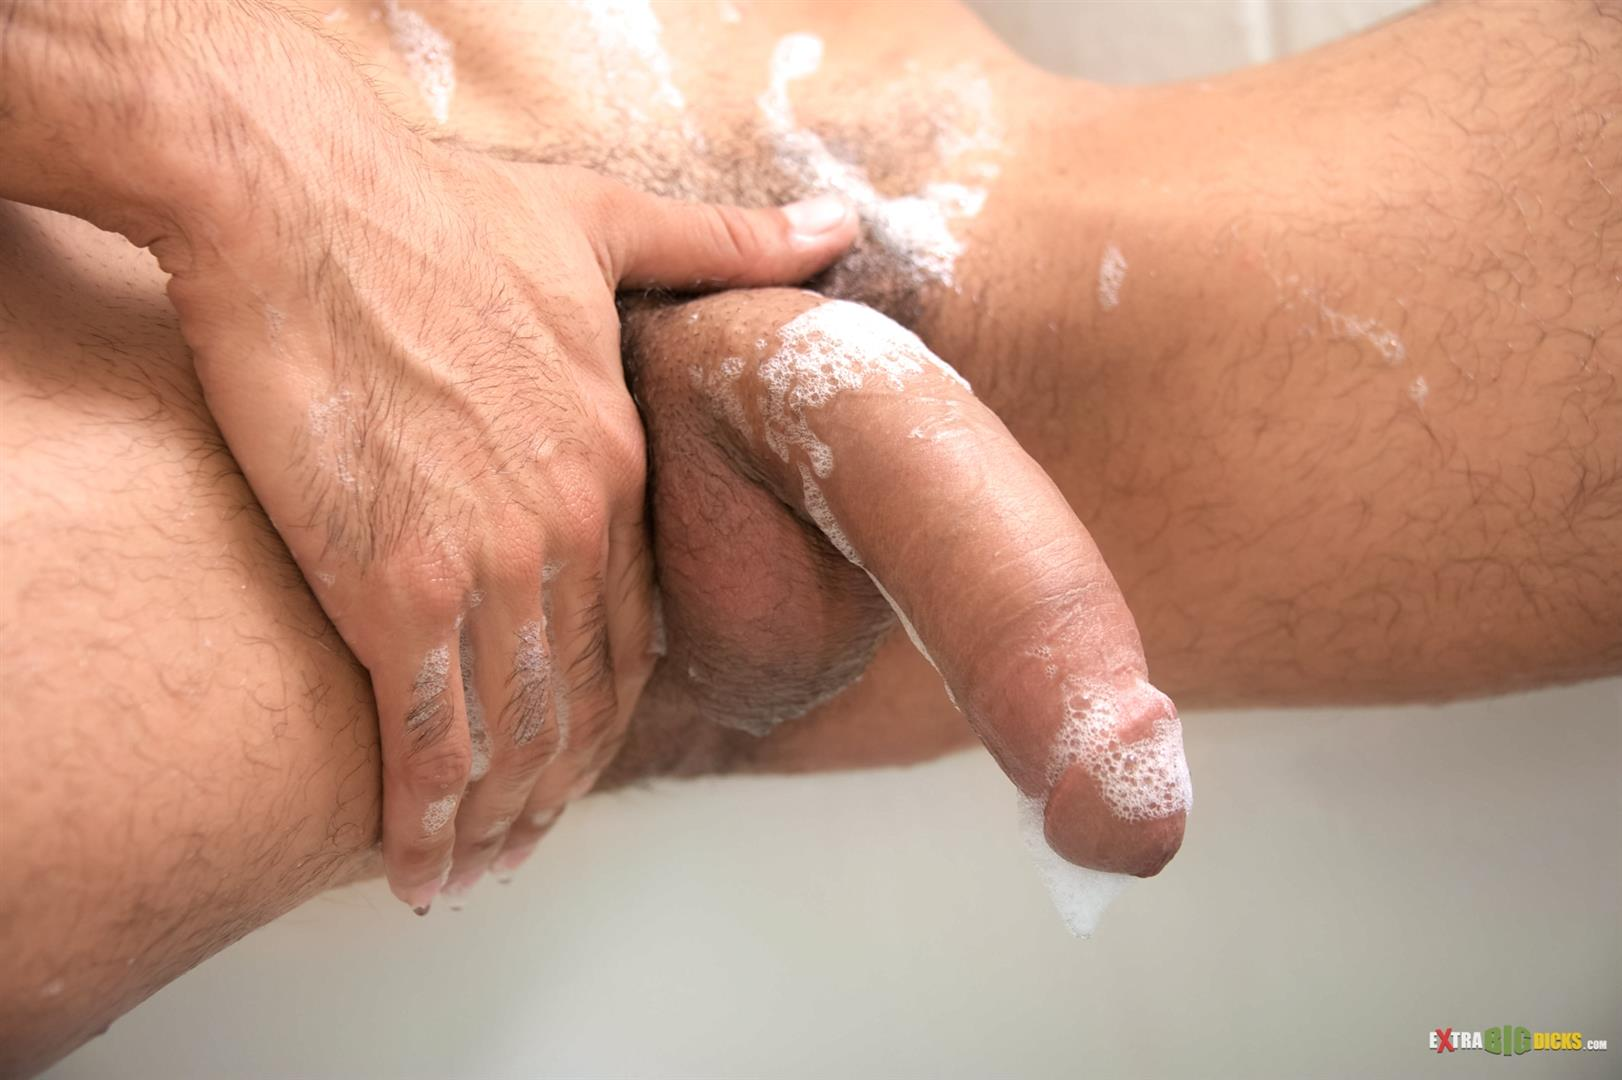 Extra Big Dicks Bobby Hart Hunk Jerking off Huge Cock in the Bathtub Amateur Gay Porn 06 Amateur Hunk Taking A Bubble Bath Jerking His Huge Cock